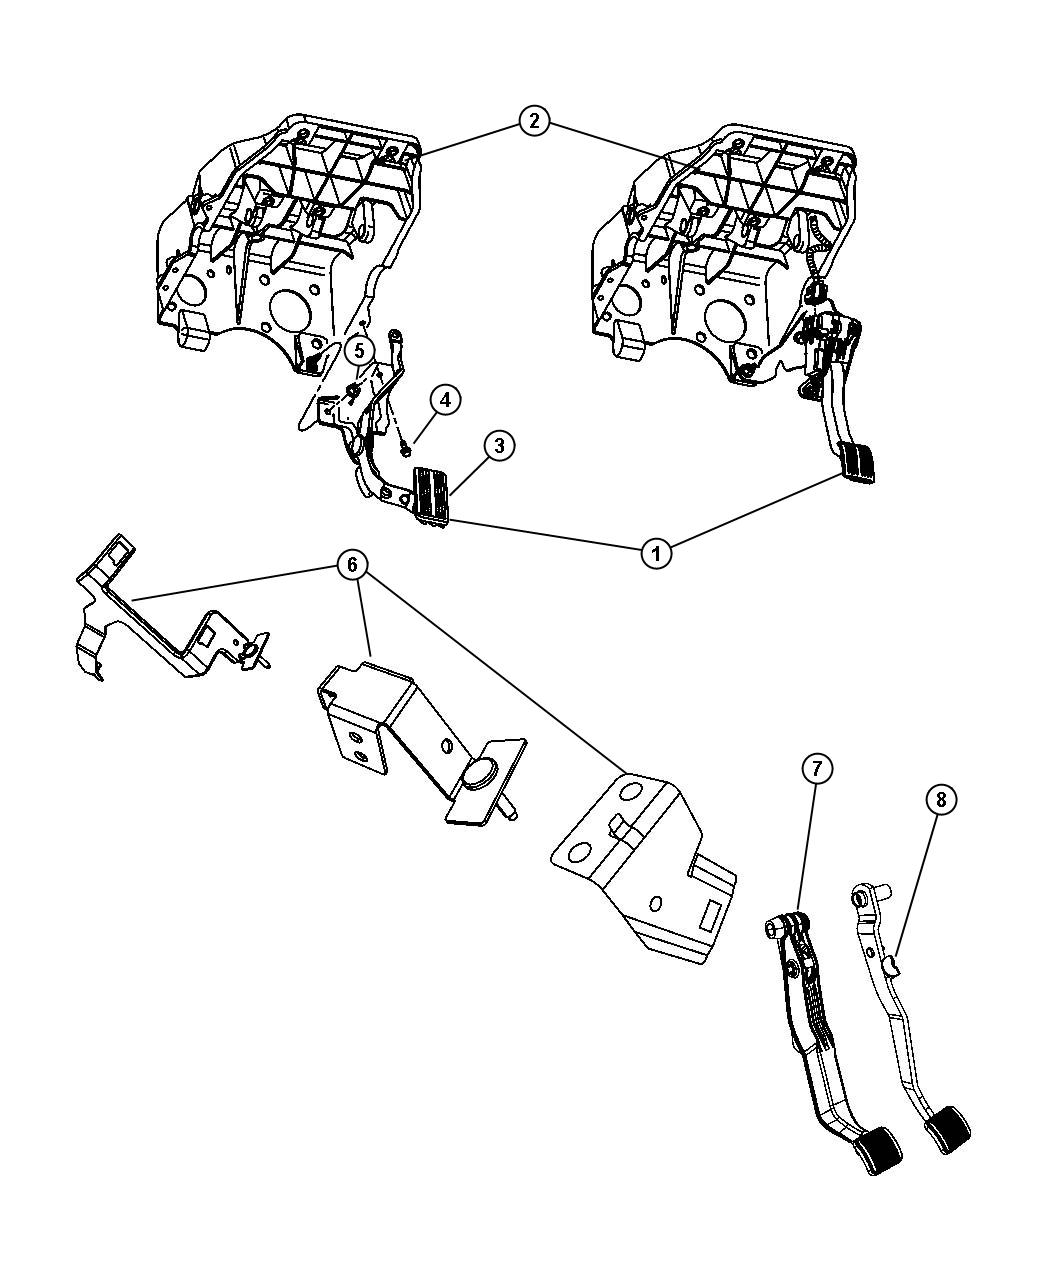 Dodge Ram 3500 Pedal assembly, used for: pedal and bracket